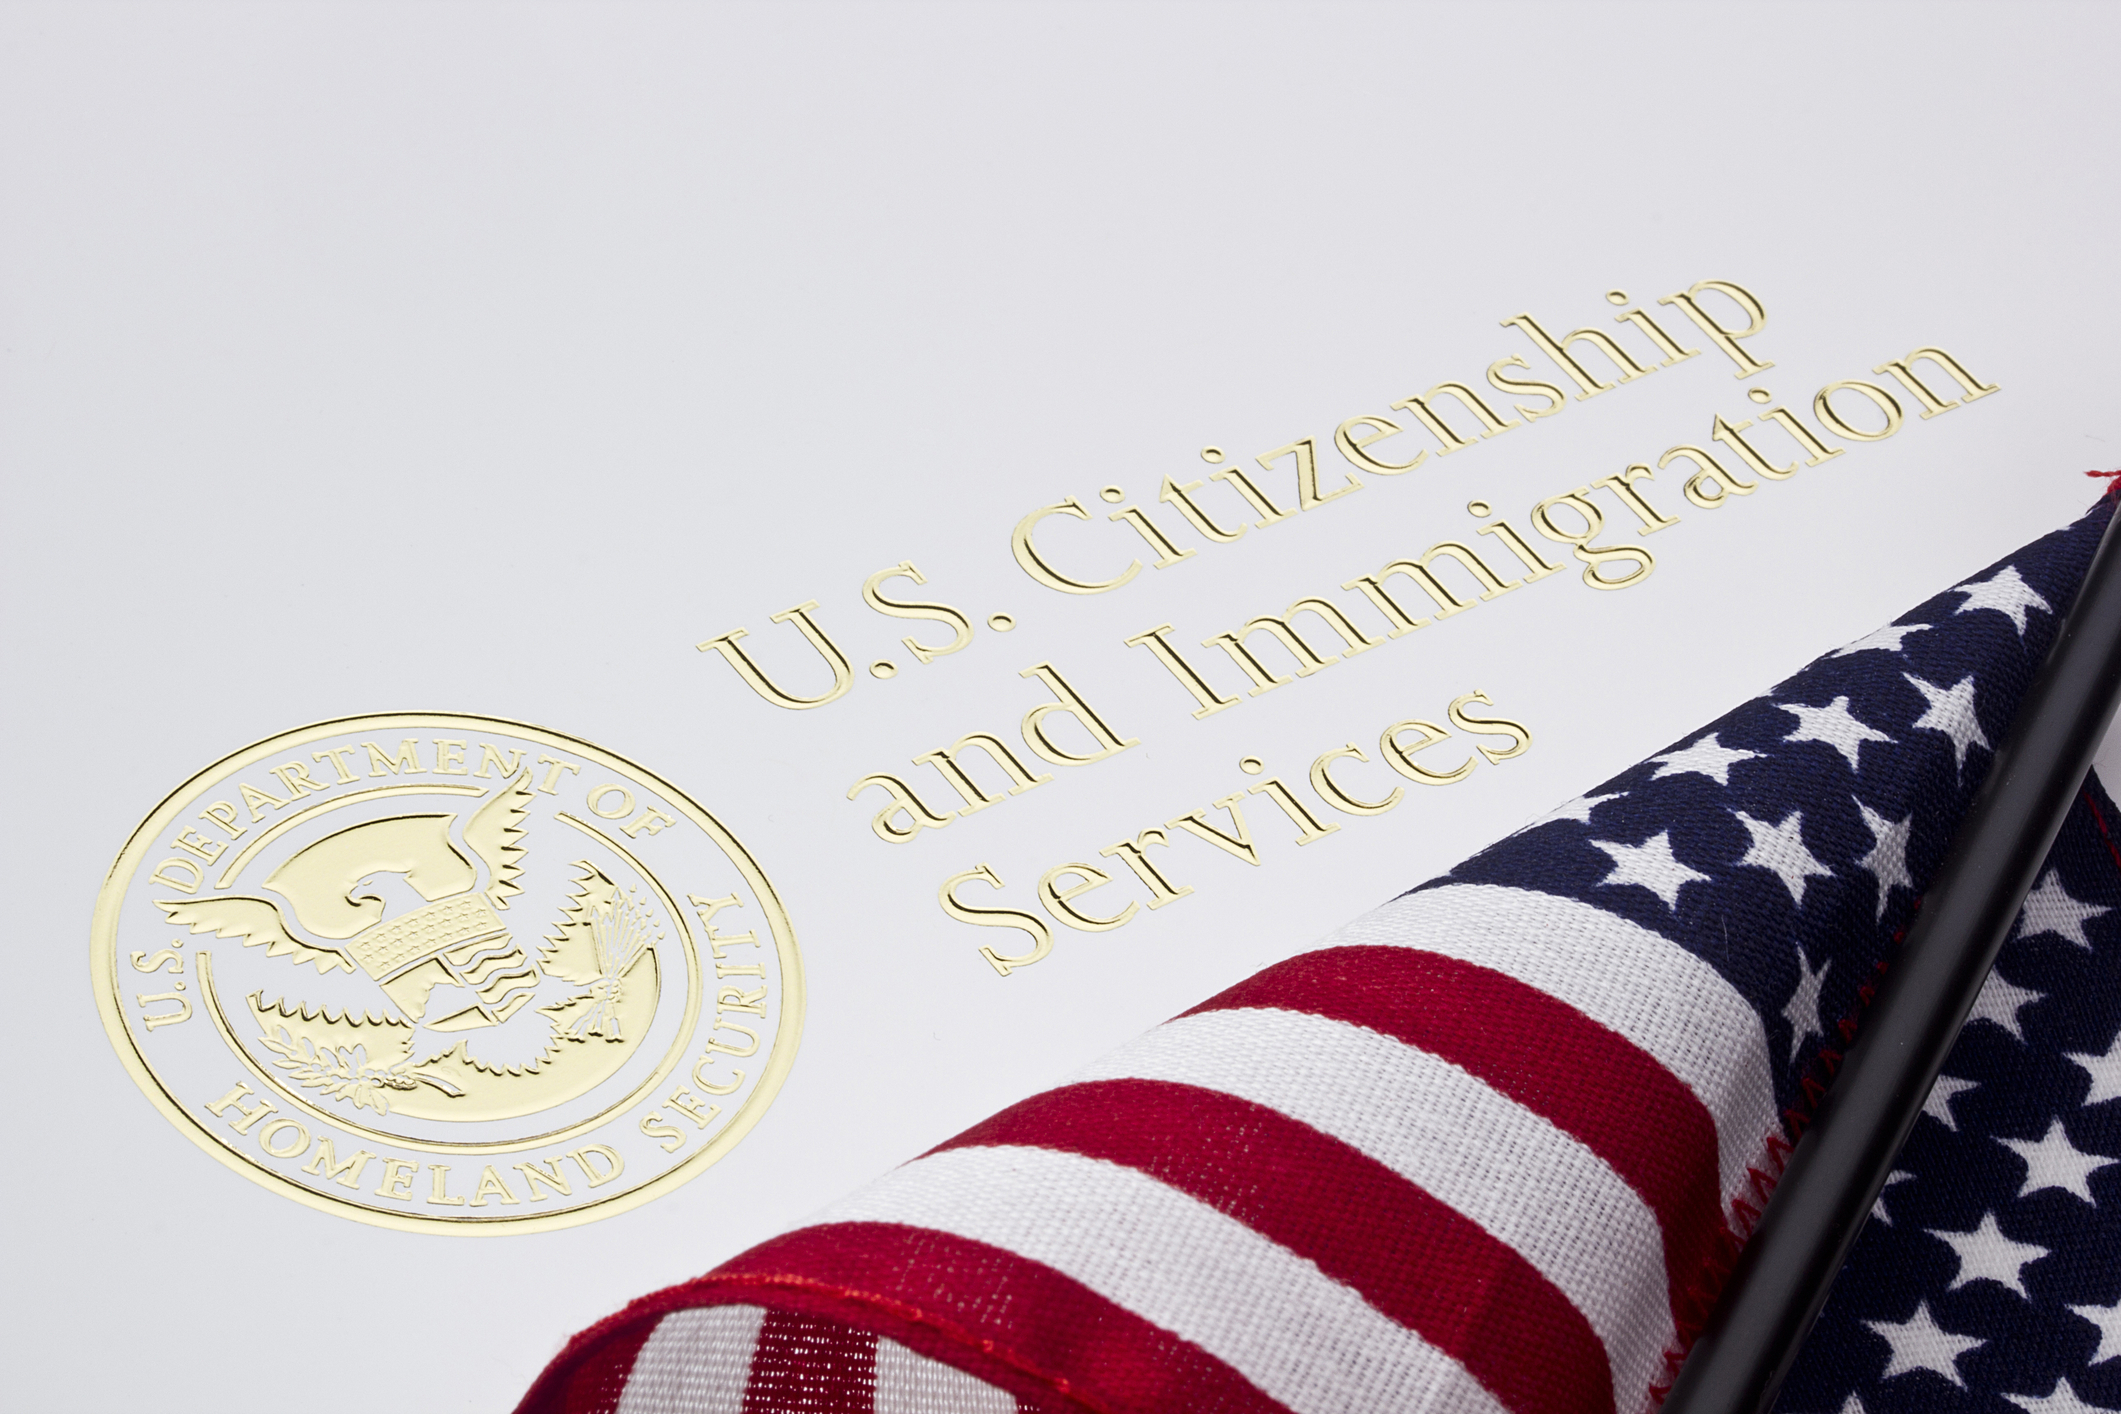 Current Form I-9 Expires August 31, Uscis Fails To Issue pertaining to I-9 Form 2020